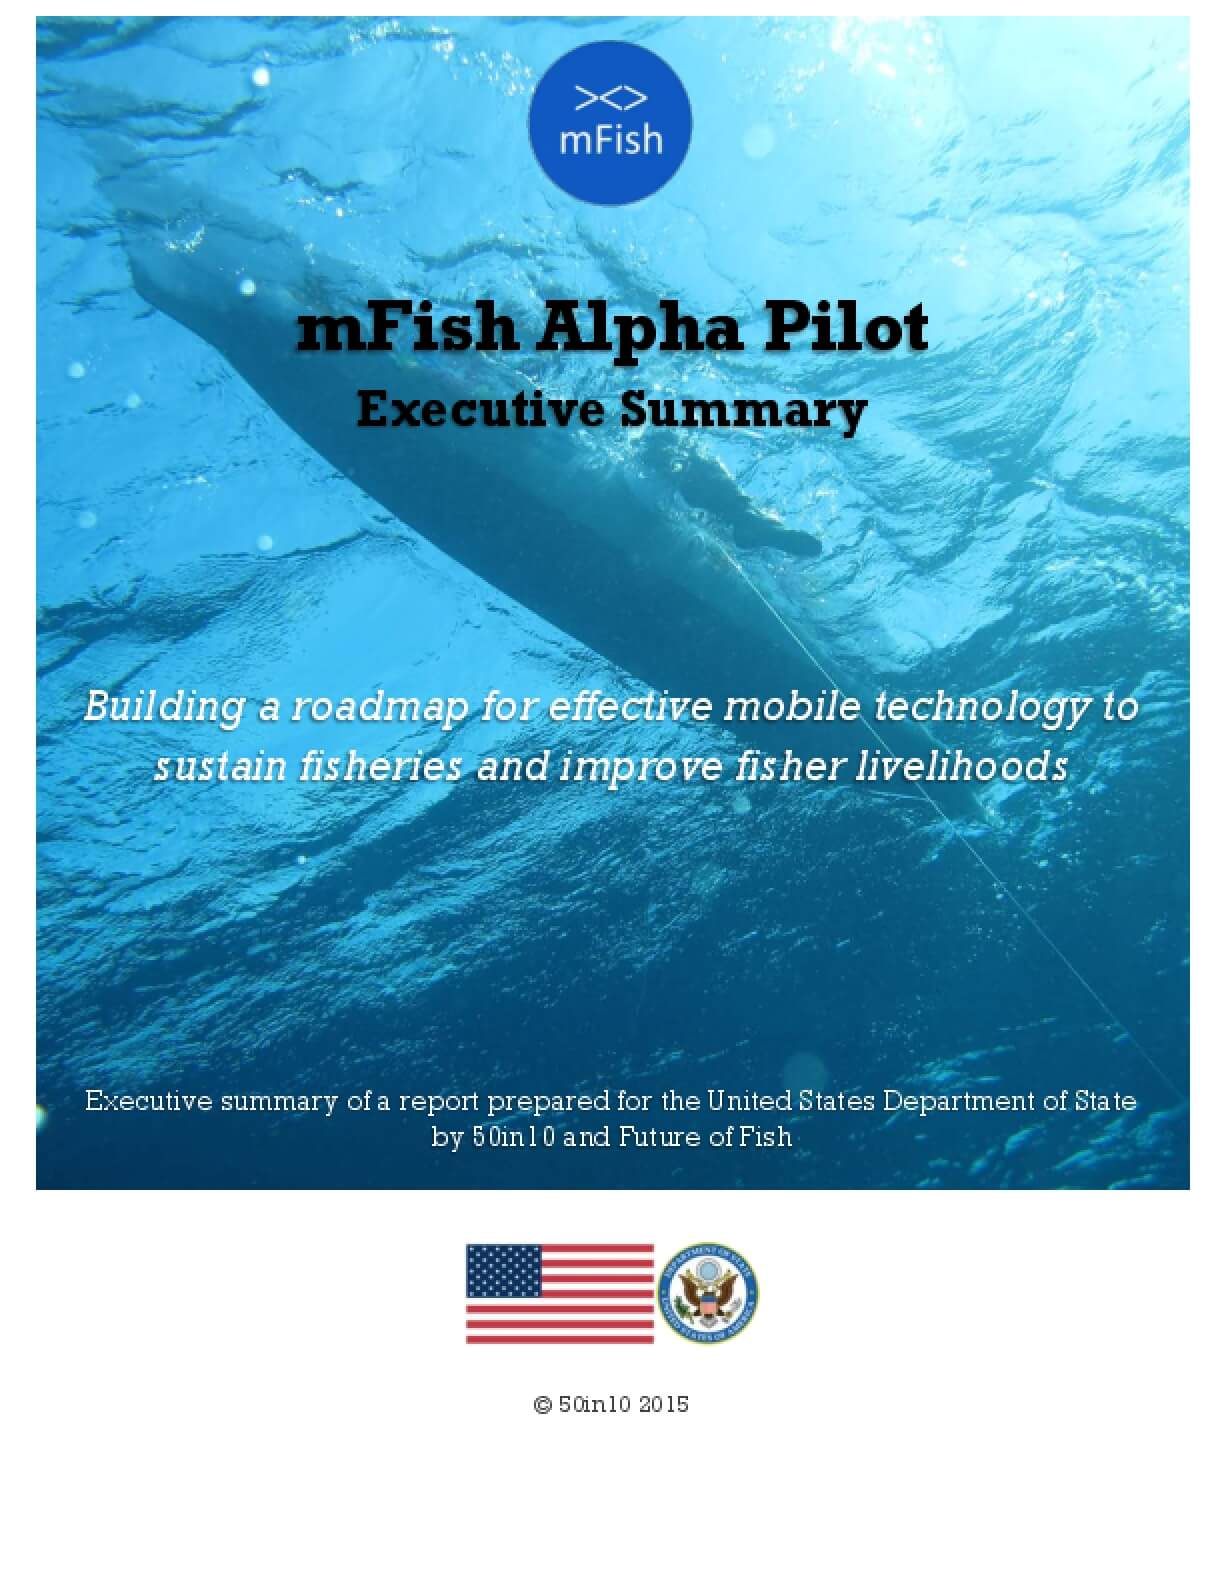 mFish Alpha Pilot: Building a Roadmap for Effective Mobile Technology to Sustain Fisheries and Improve Fisher Livelihoods. Executive Summary.